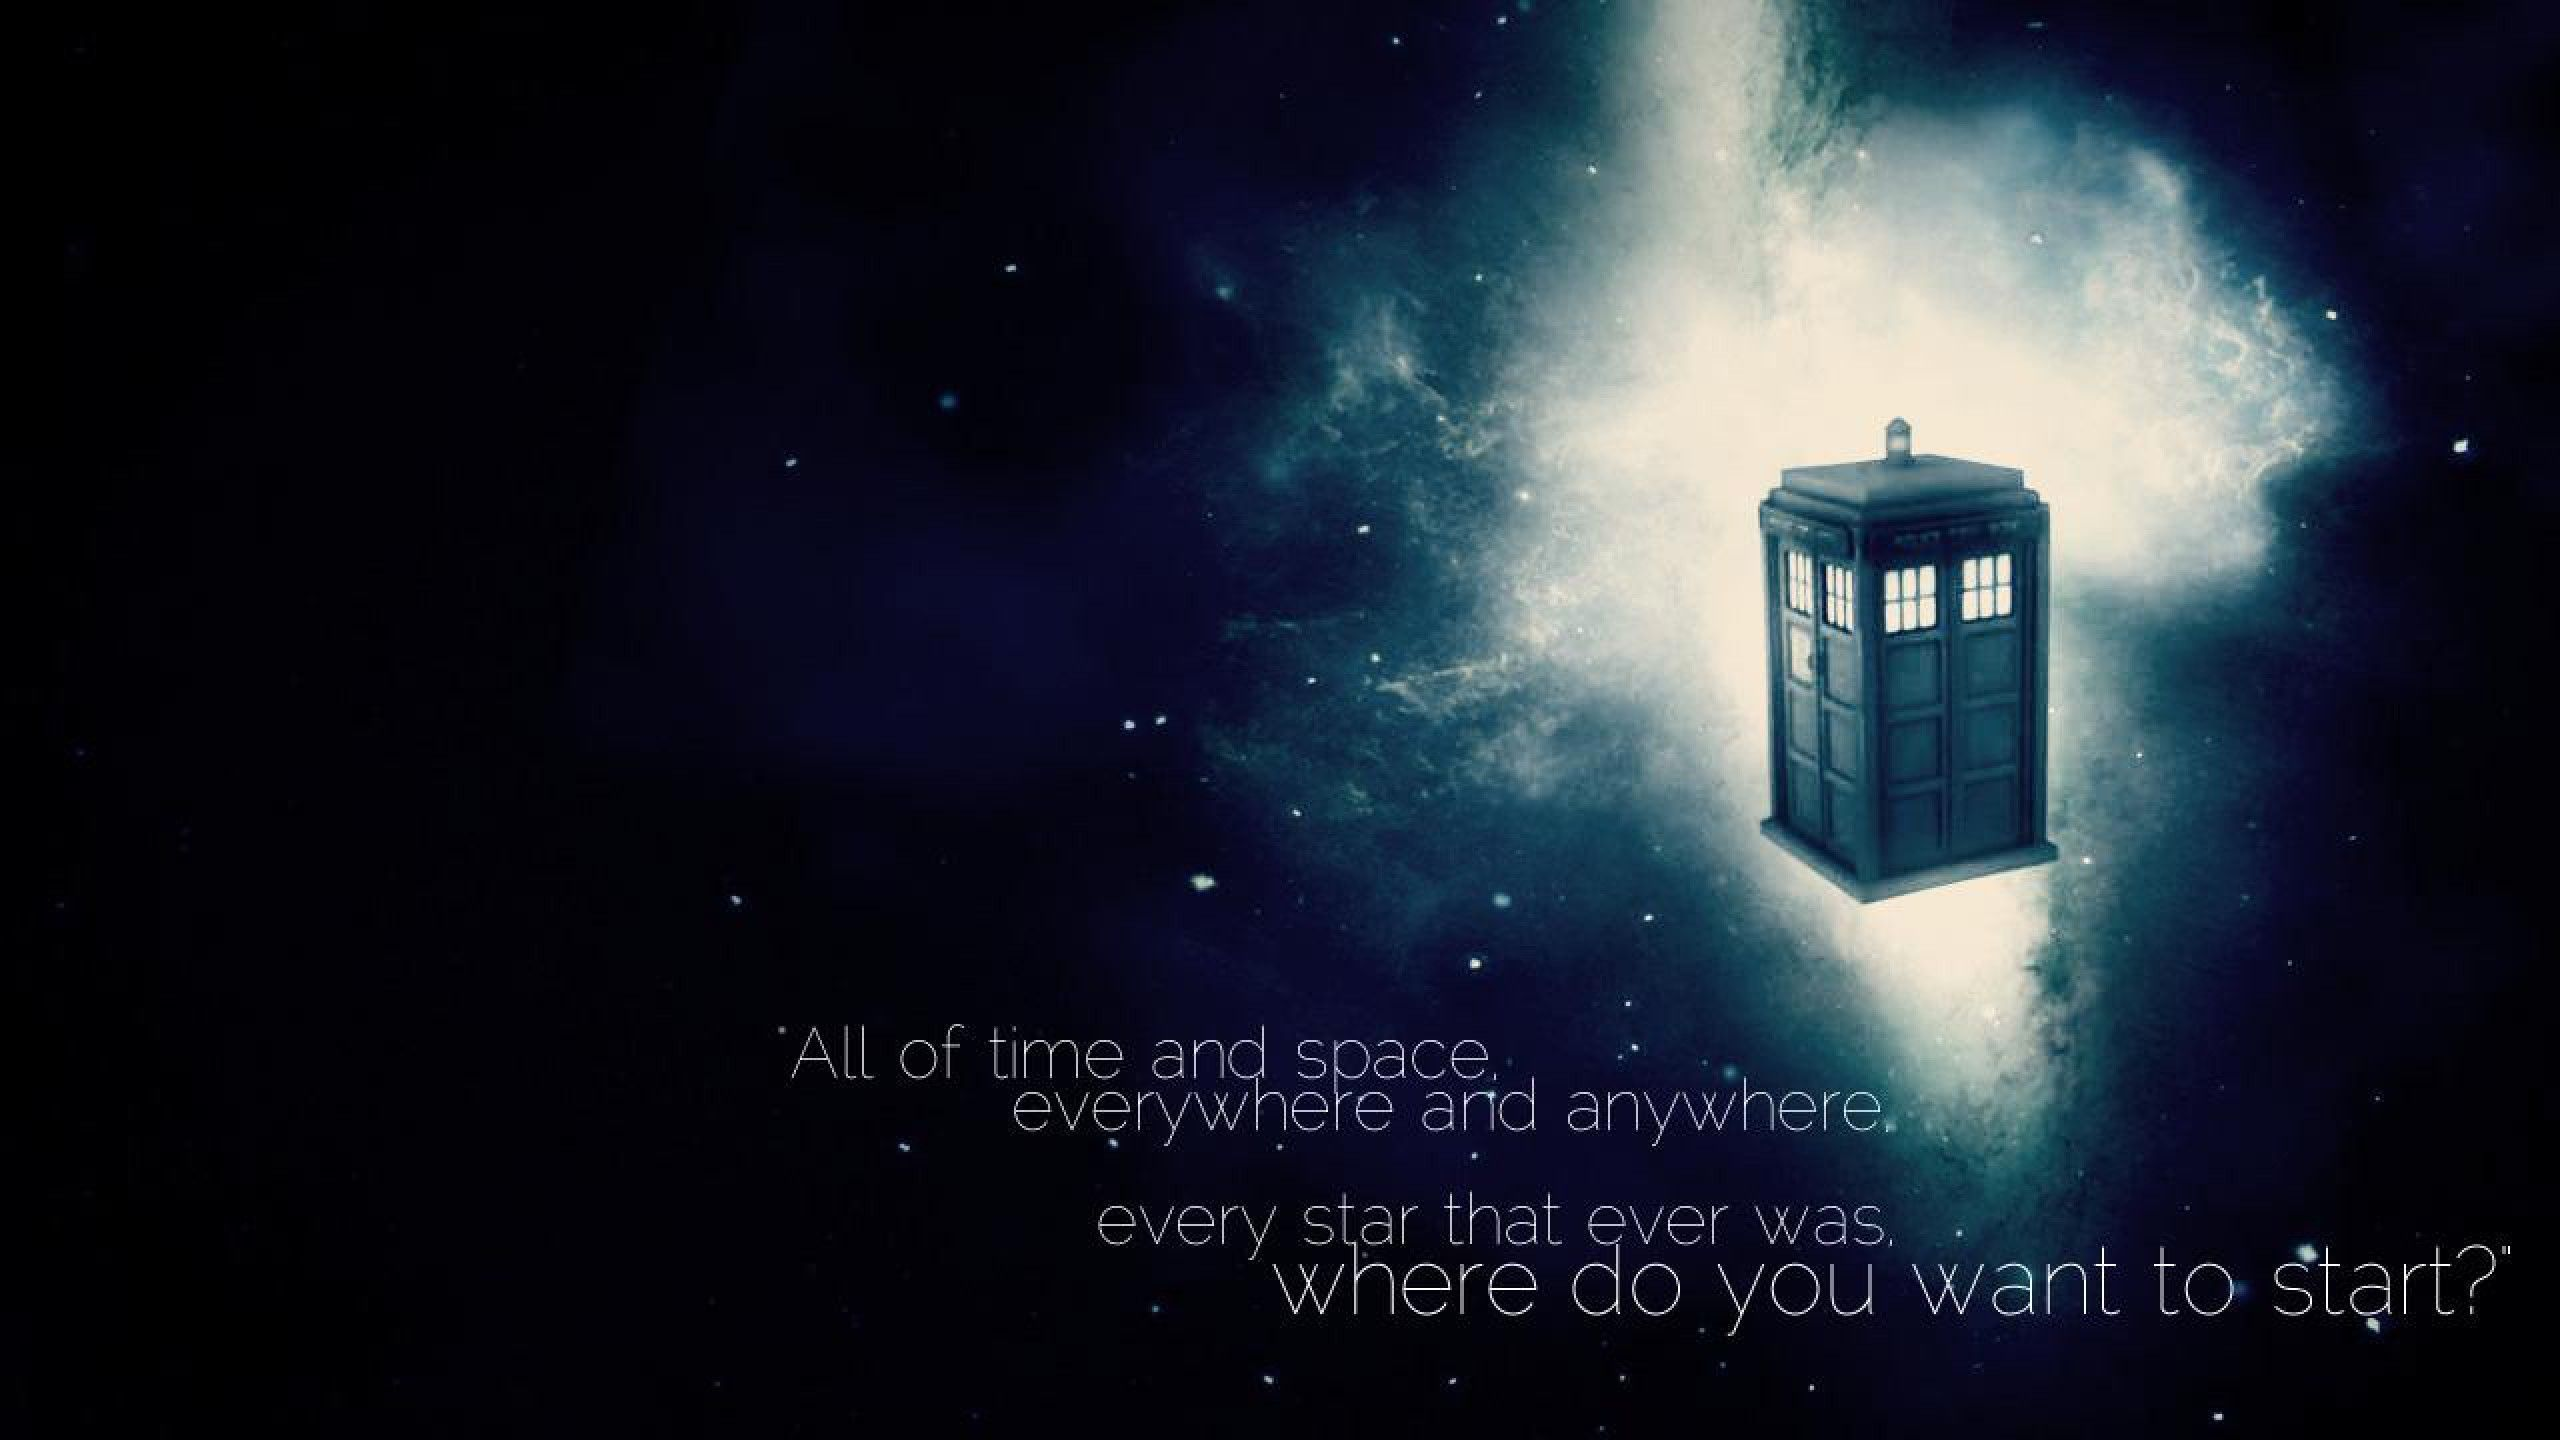 Dr Who Wallpaper By On Deviantart Hd Wallpapers